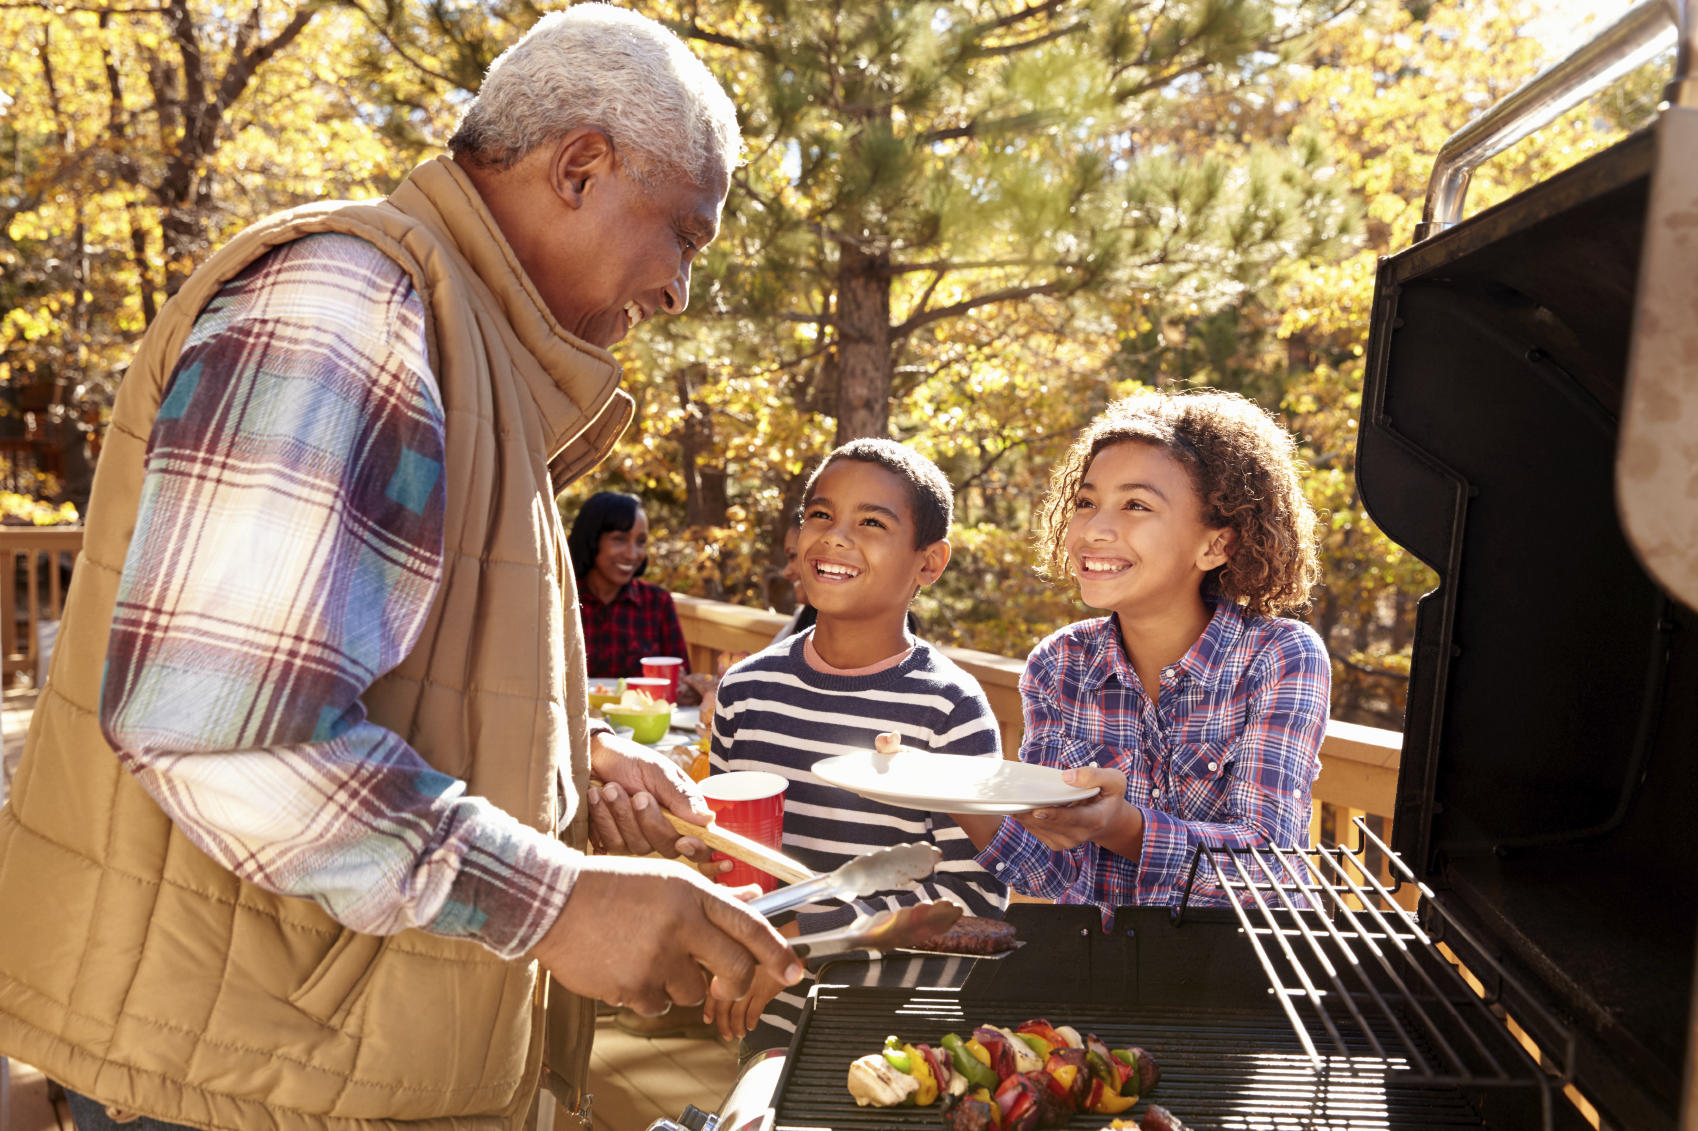 Grandparents With Children Enjoying Outdoor Barbecue